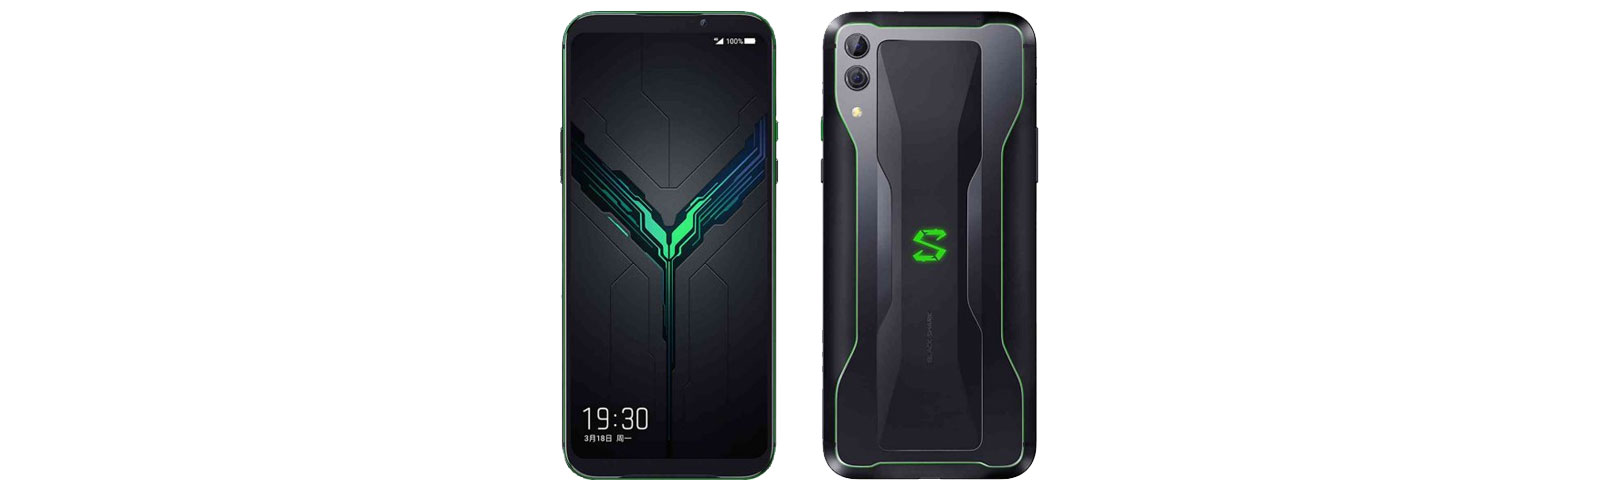 Black Shark preps a 5G smartphone, to release it in H2 of 2020